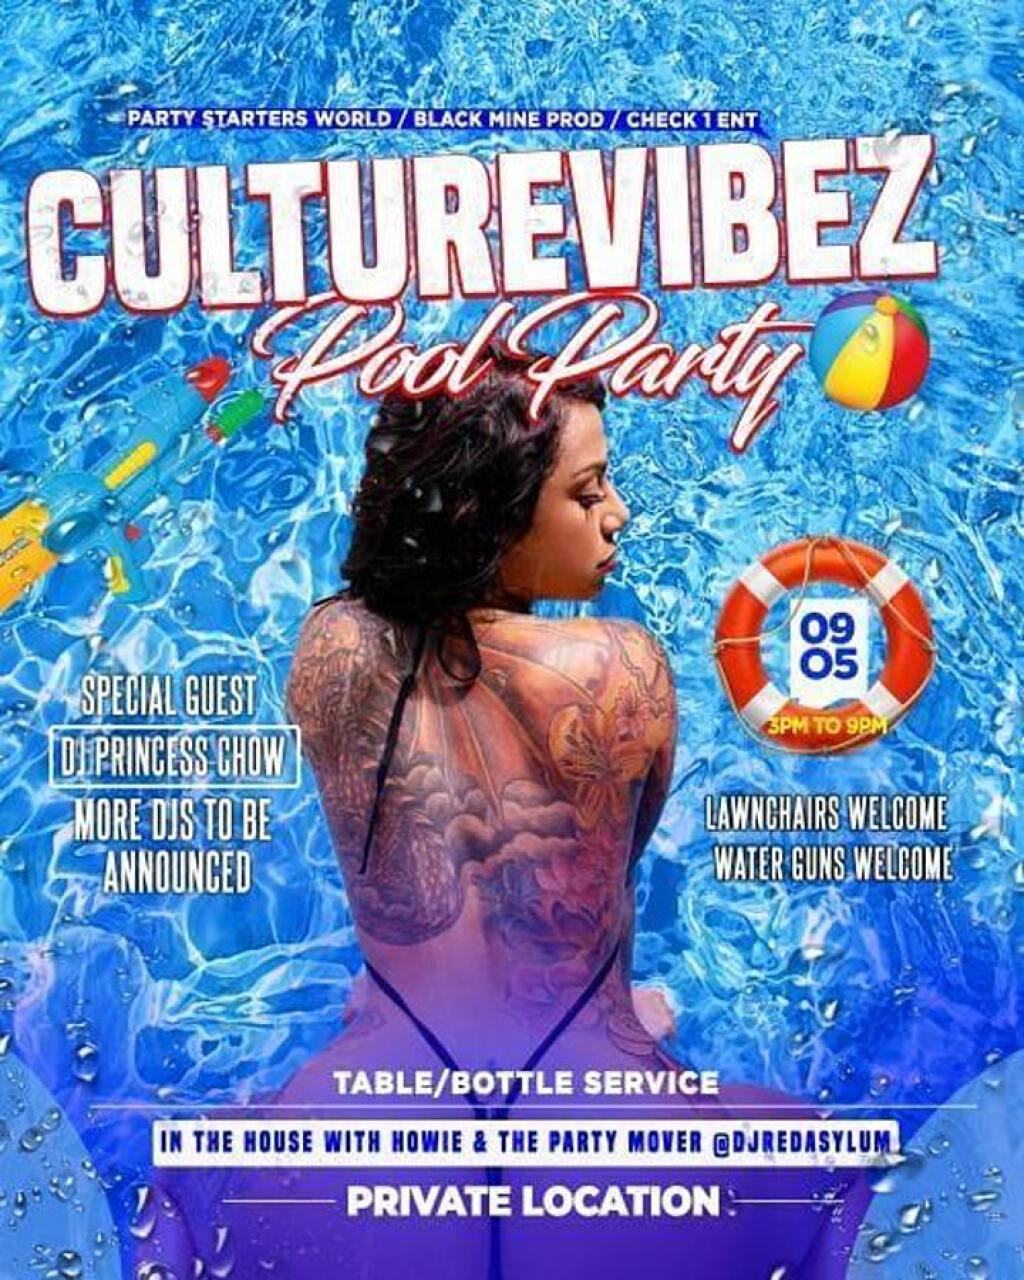 Culture Vibez Pool Party flyer or graphic.